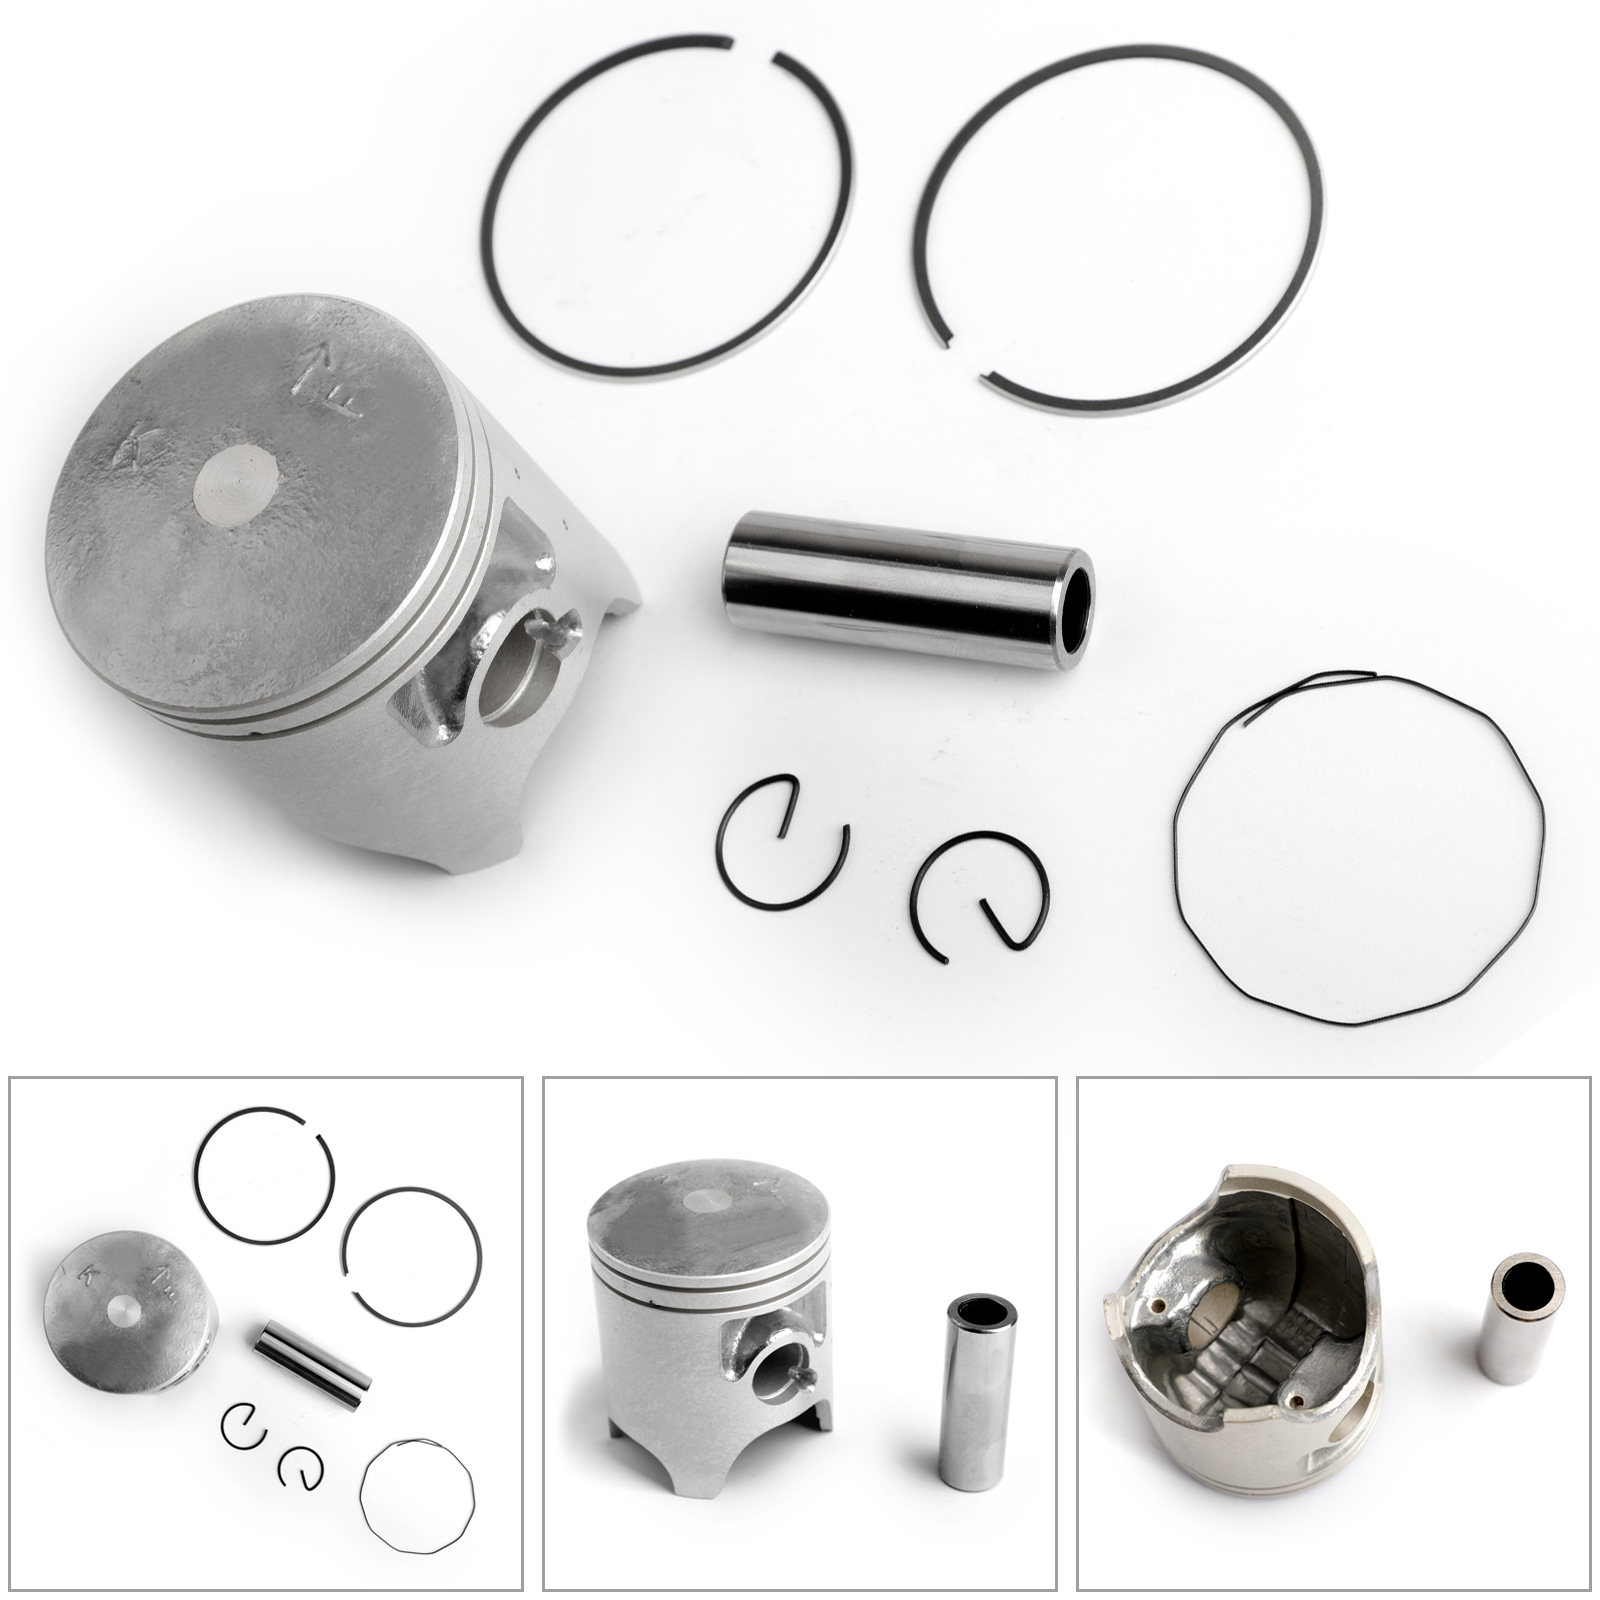 Yamaha TZR125 TZR250 56.40mm STD Bore Piston Kit Also fits some DTR125